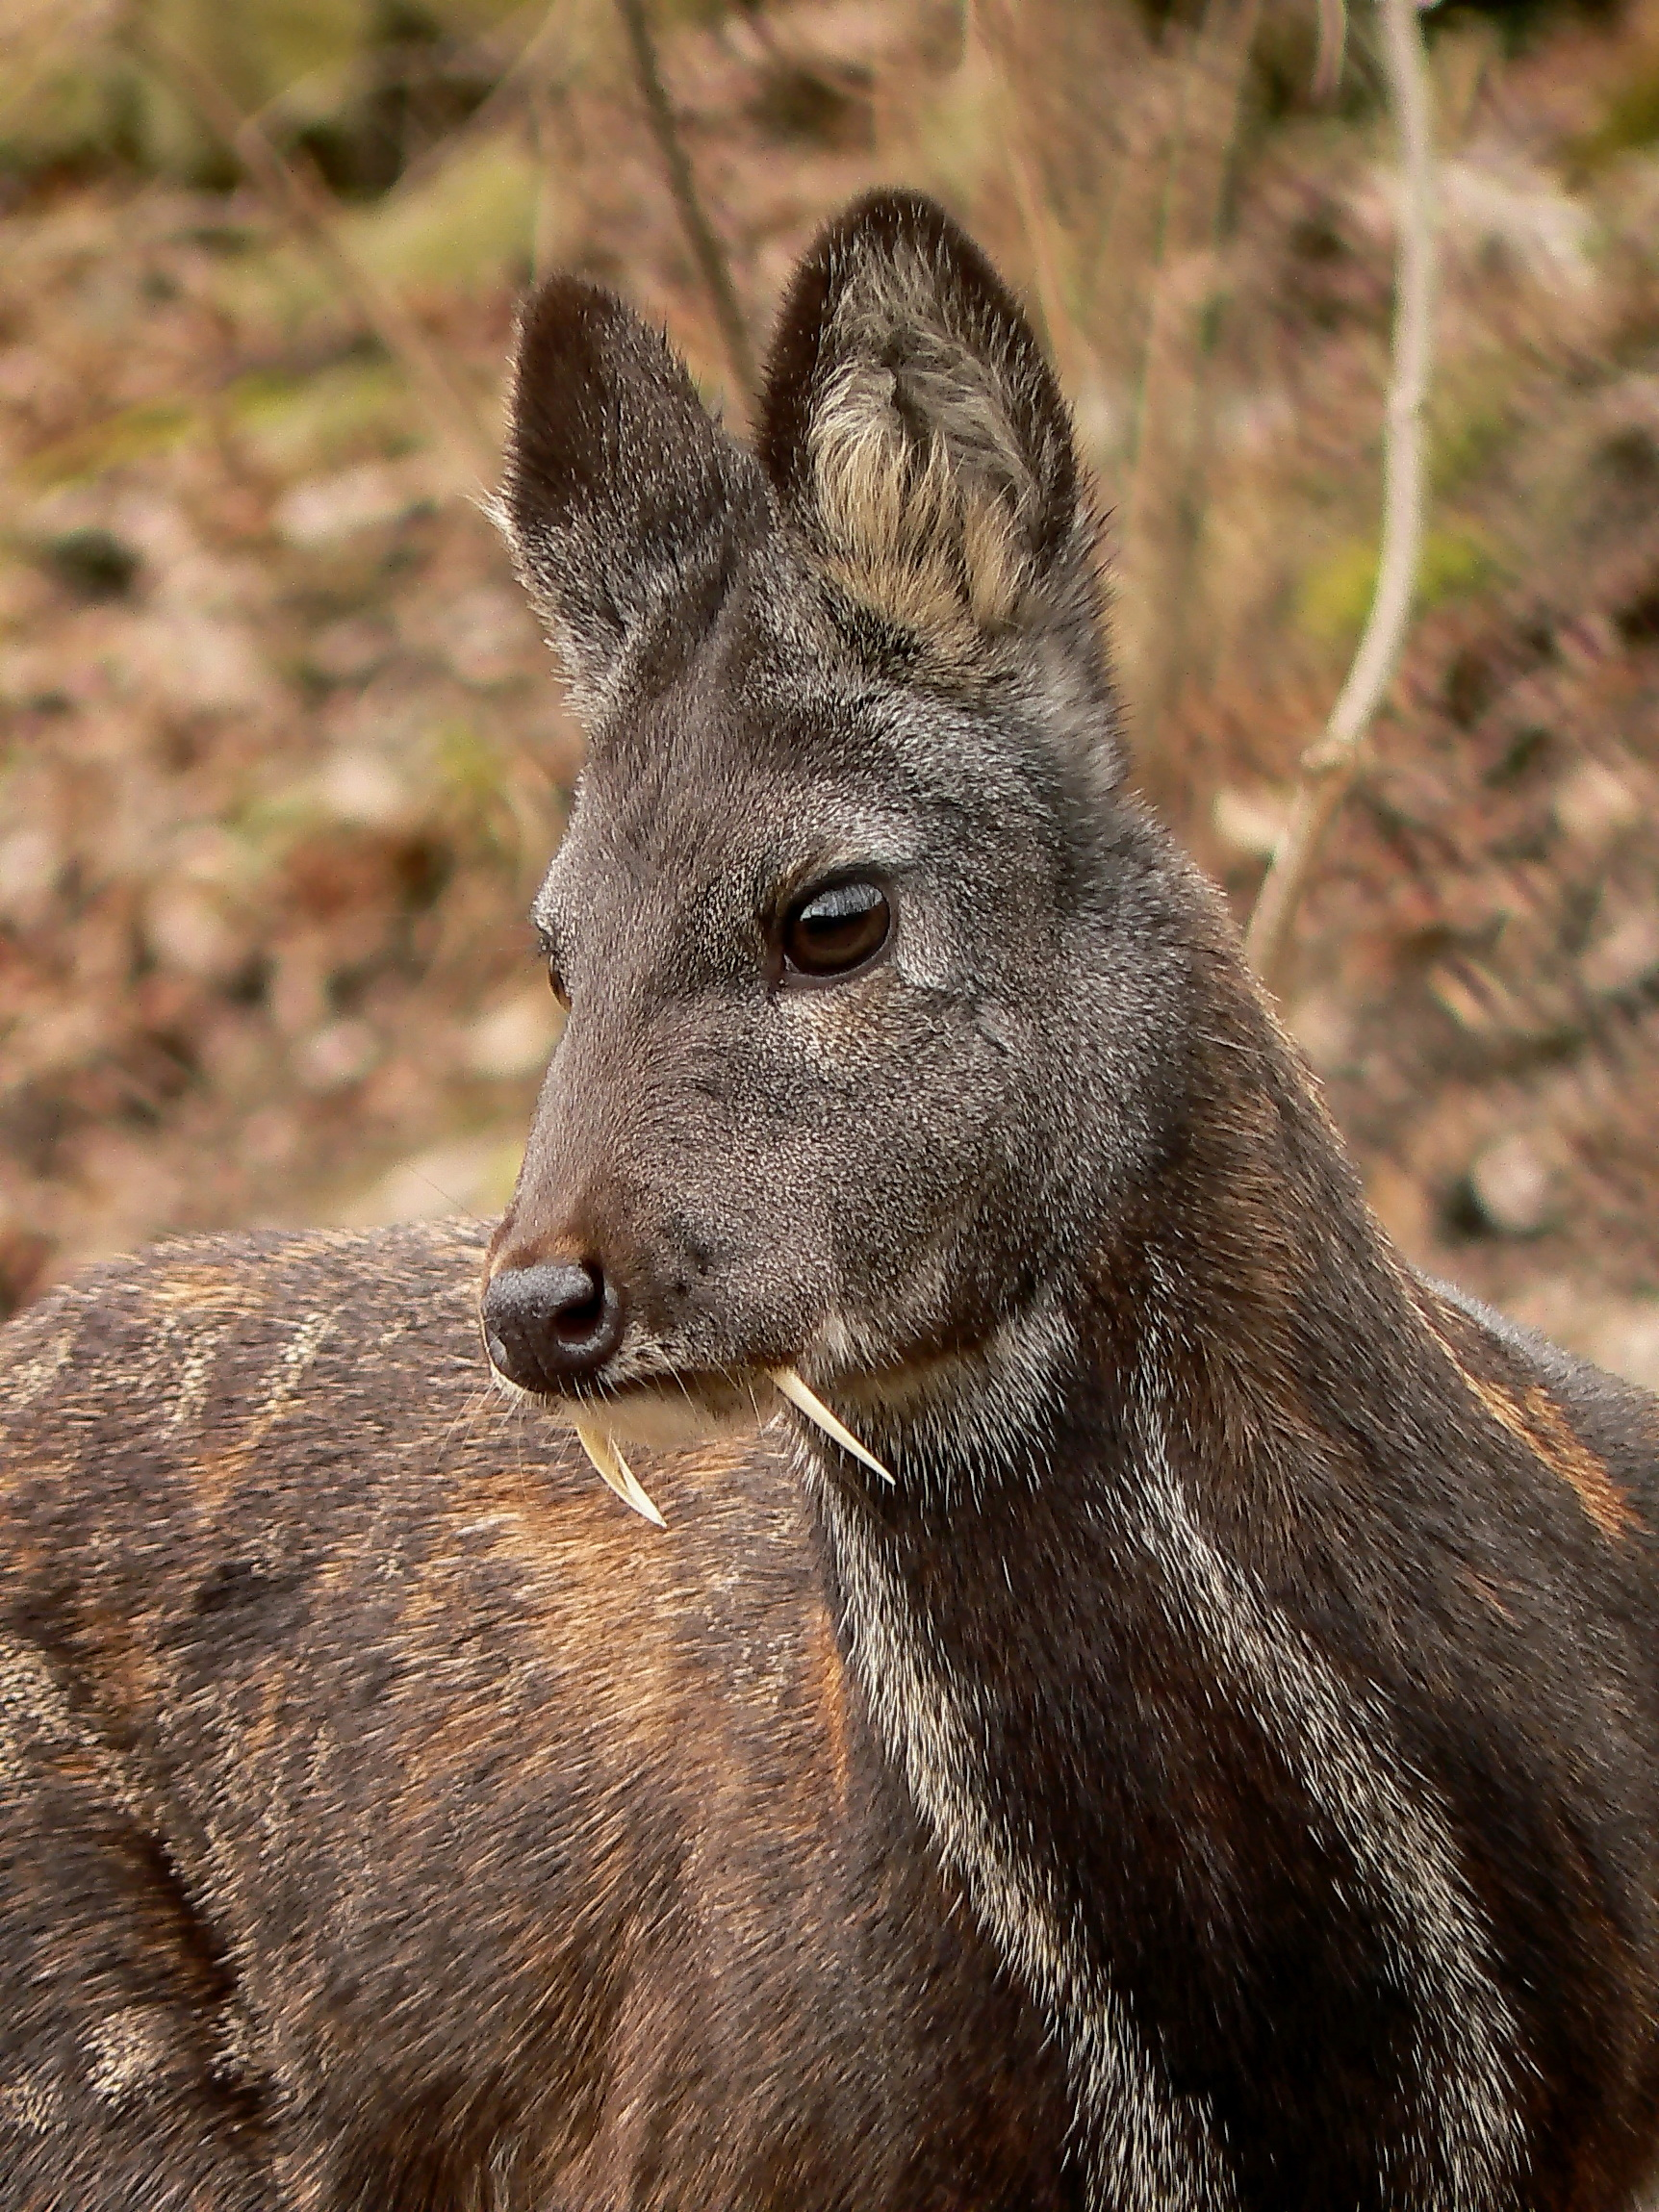 Moschus_moschiferus_in_Plzen_zoo_(12.02.2011)